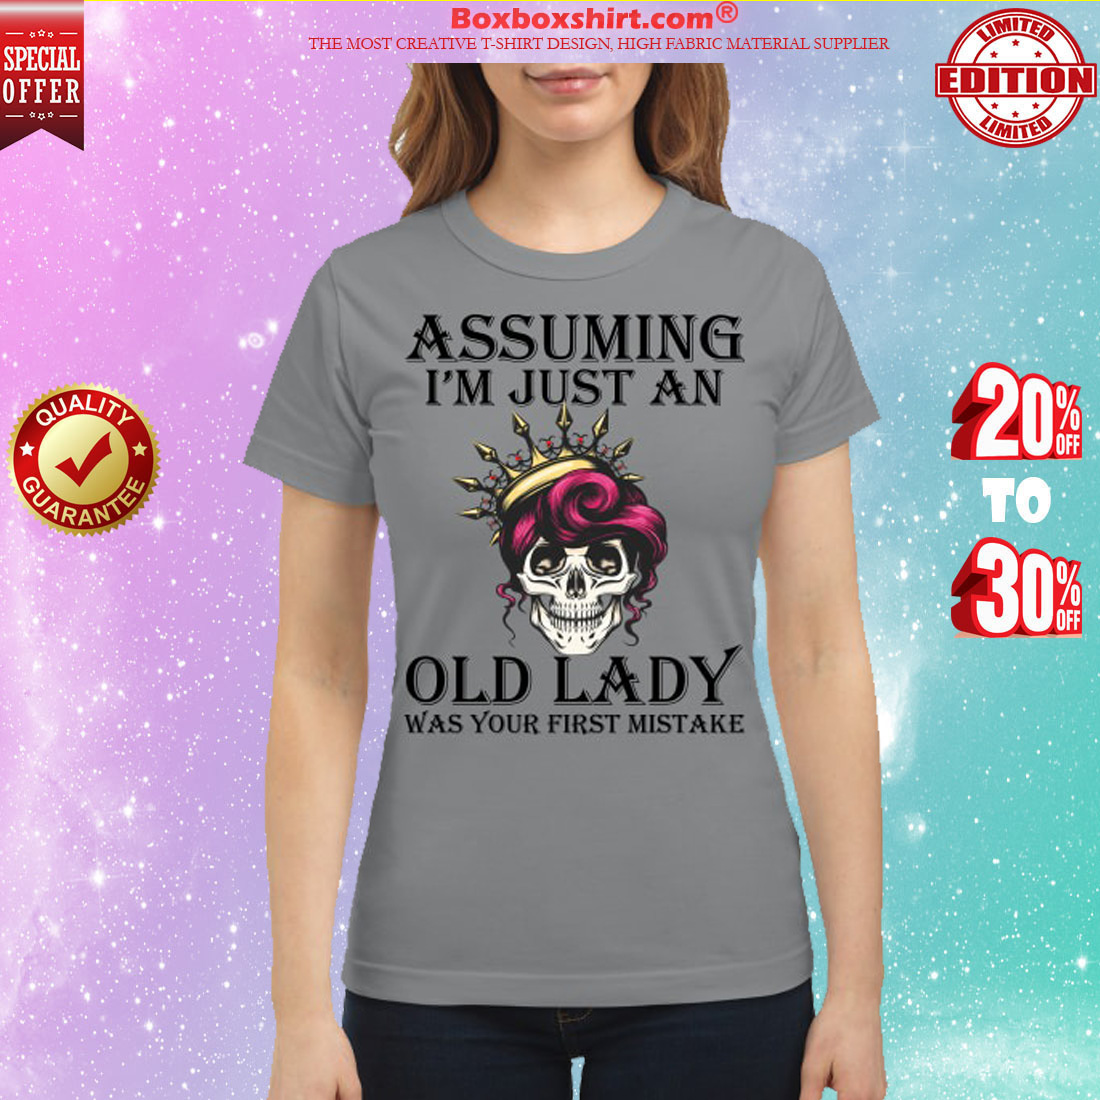 Assuming I'm just an old lady was your first mistake classic shirt